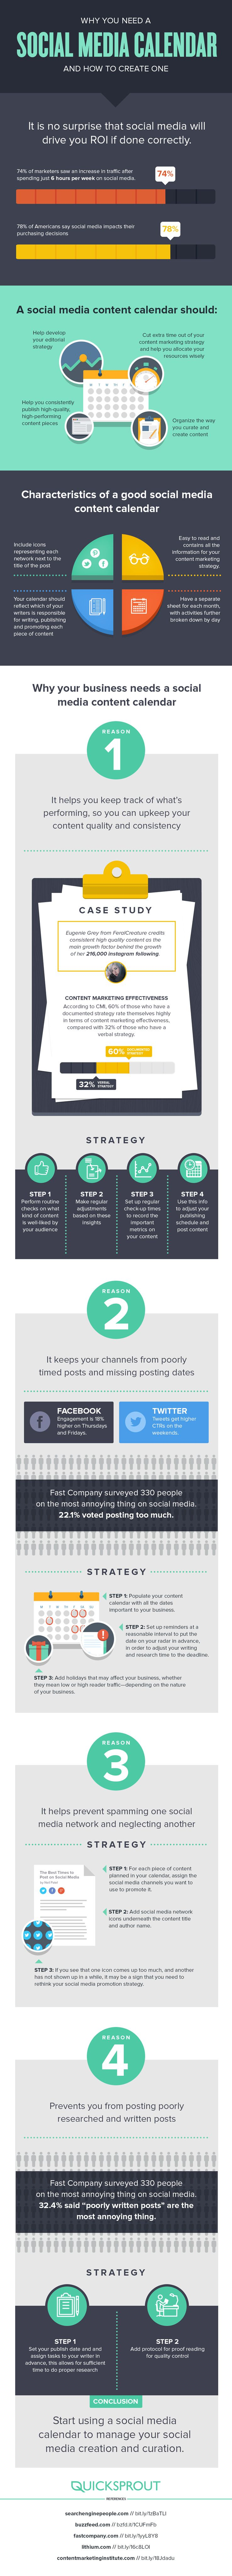 Why You Need a Social Media Calender And How To Create One #infographic